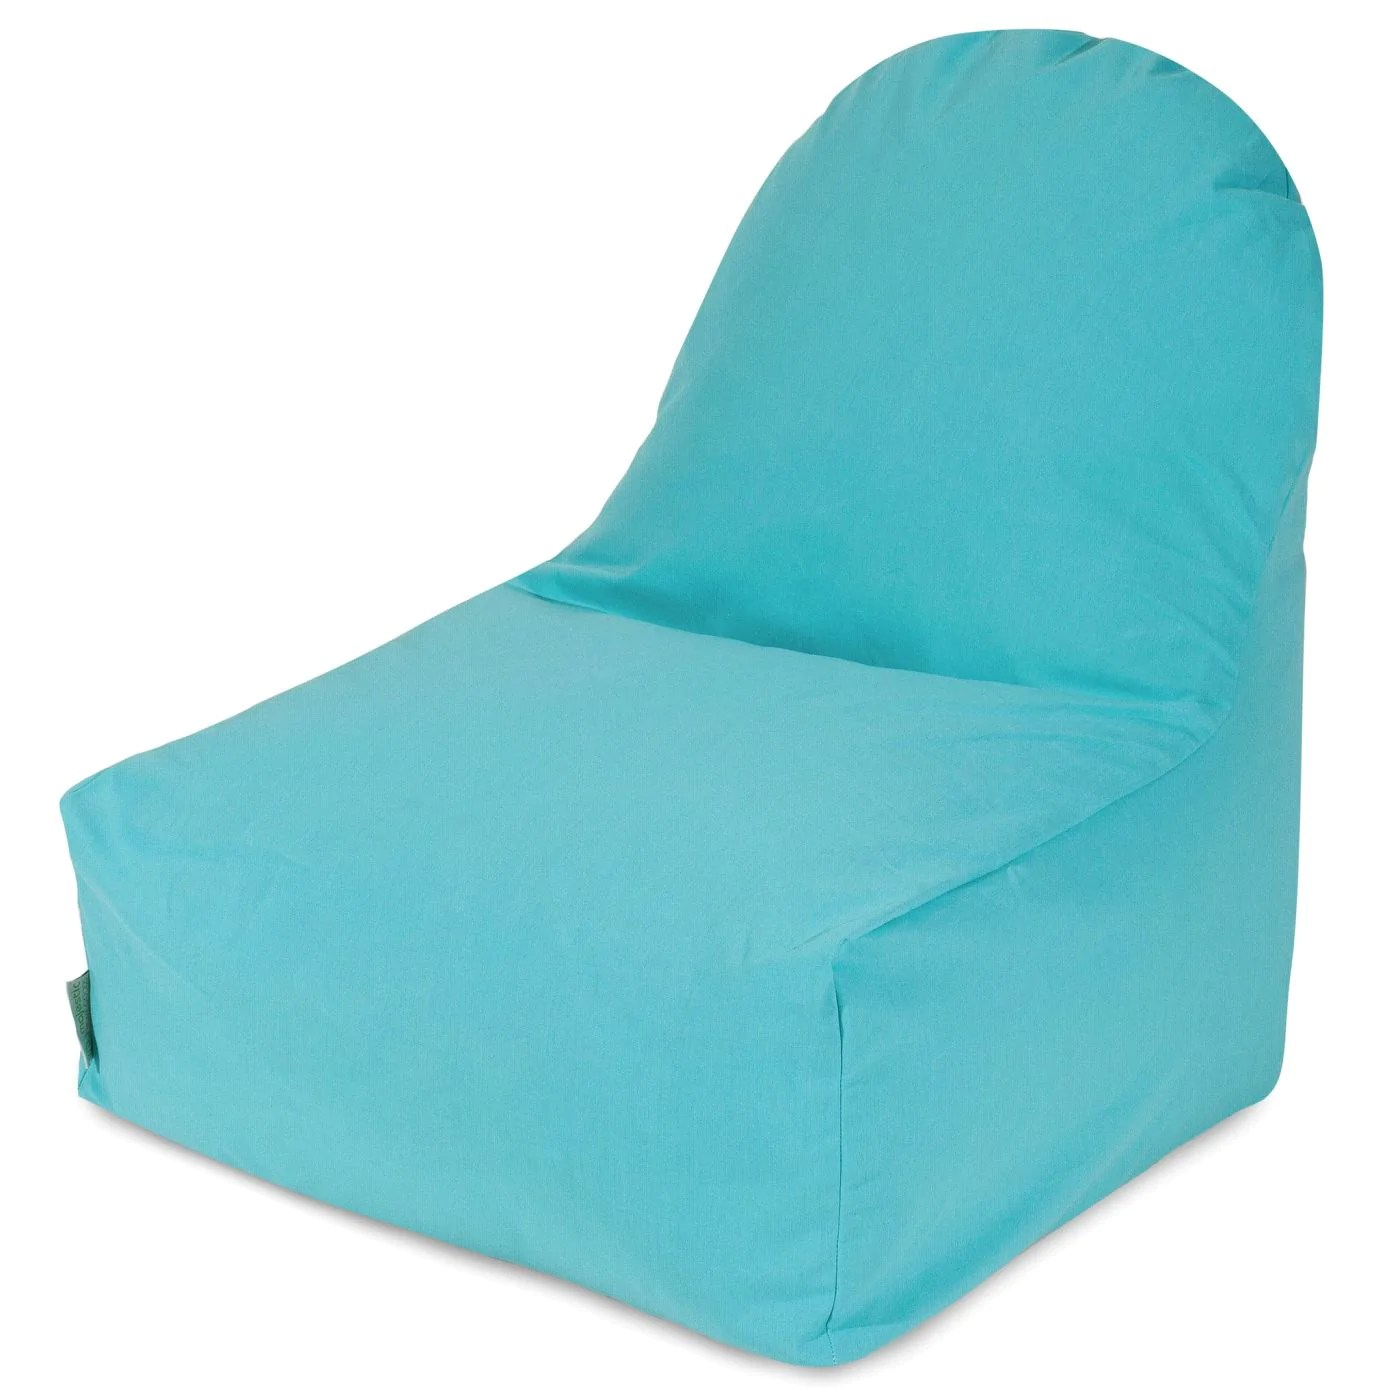 teal bean bag chair leather ottoman amazing deal on majestic home 85907251035 kick it